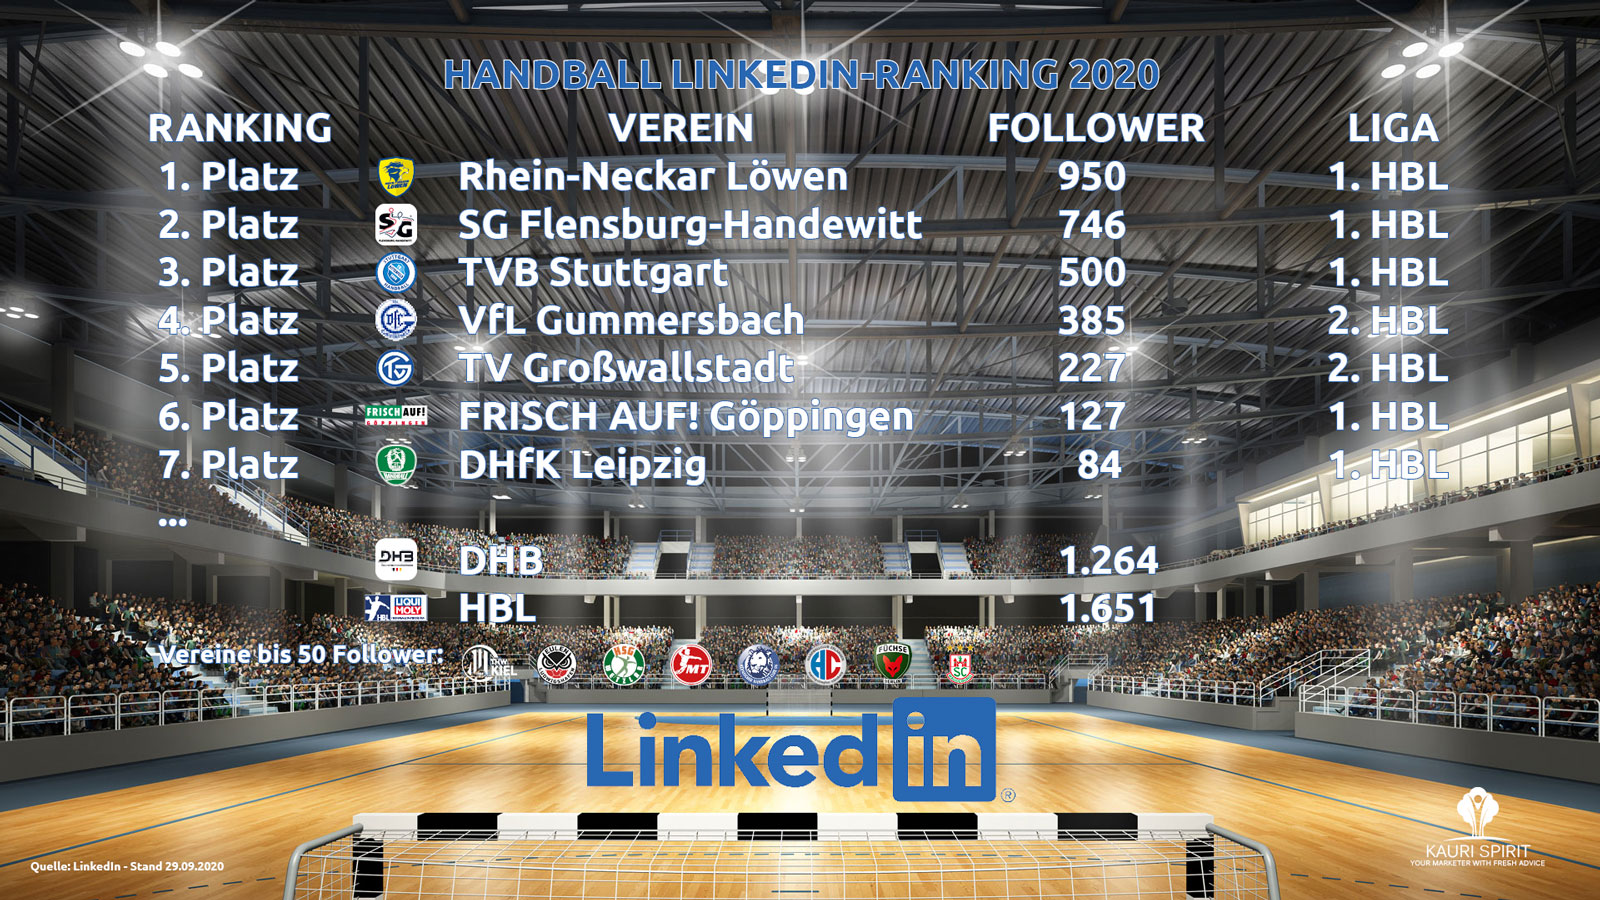 Kauri Spirit Handball Ranking LinkedIn 2020